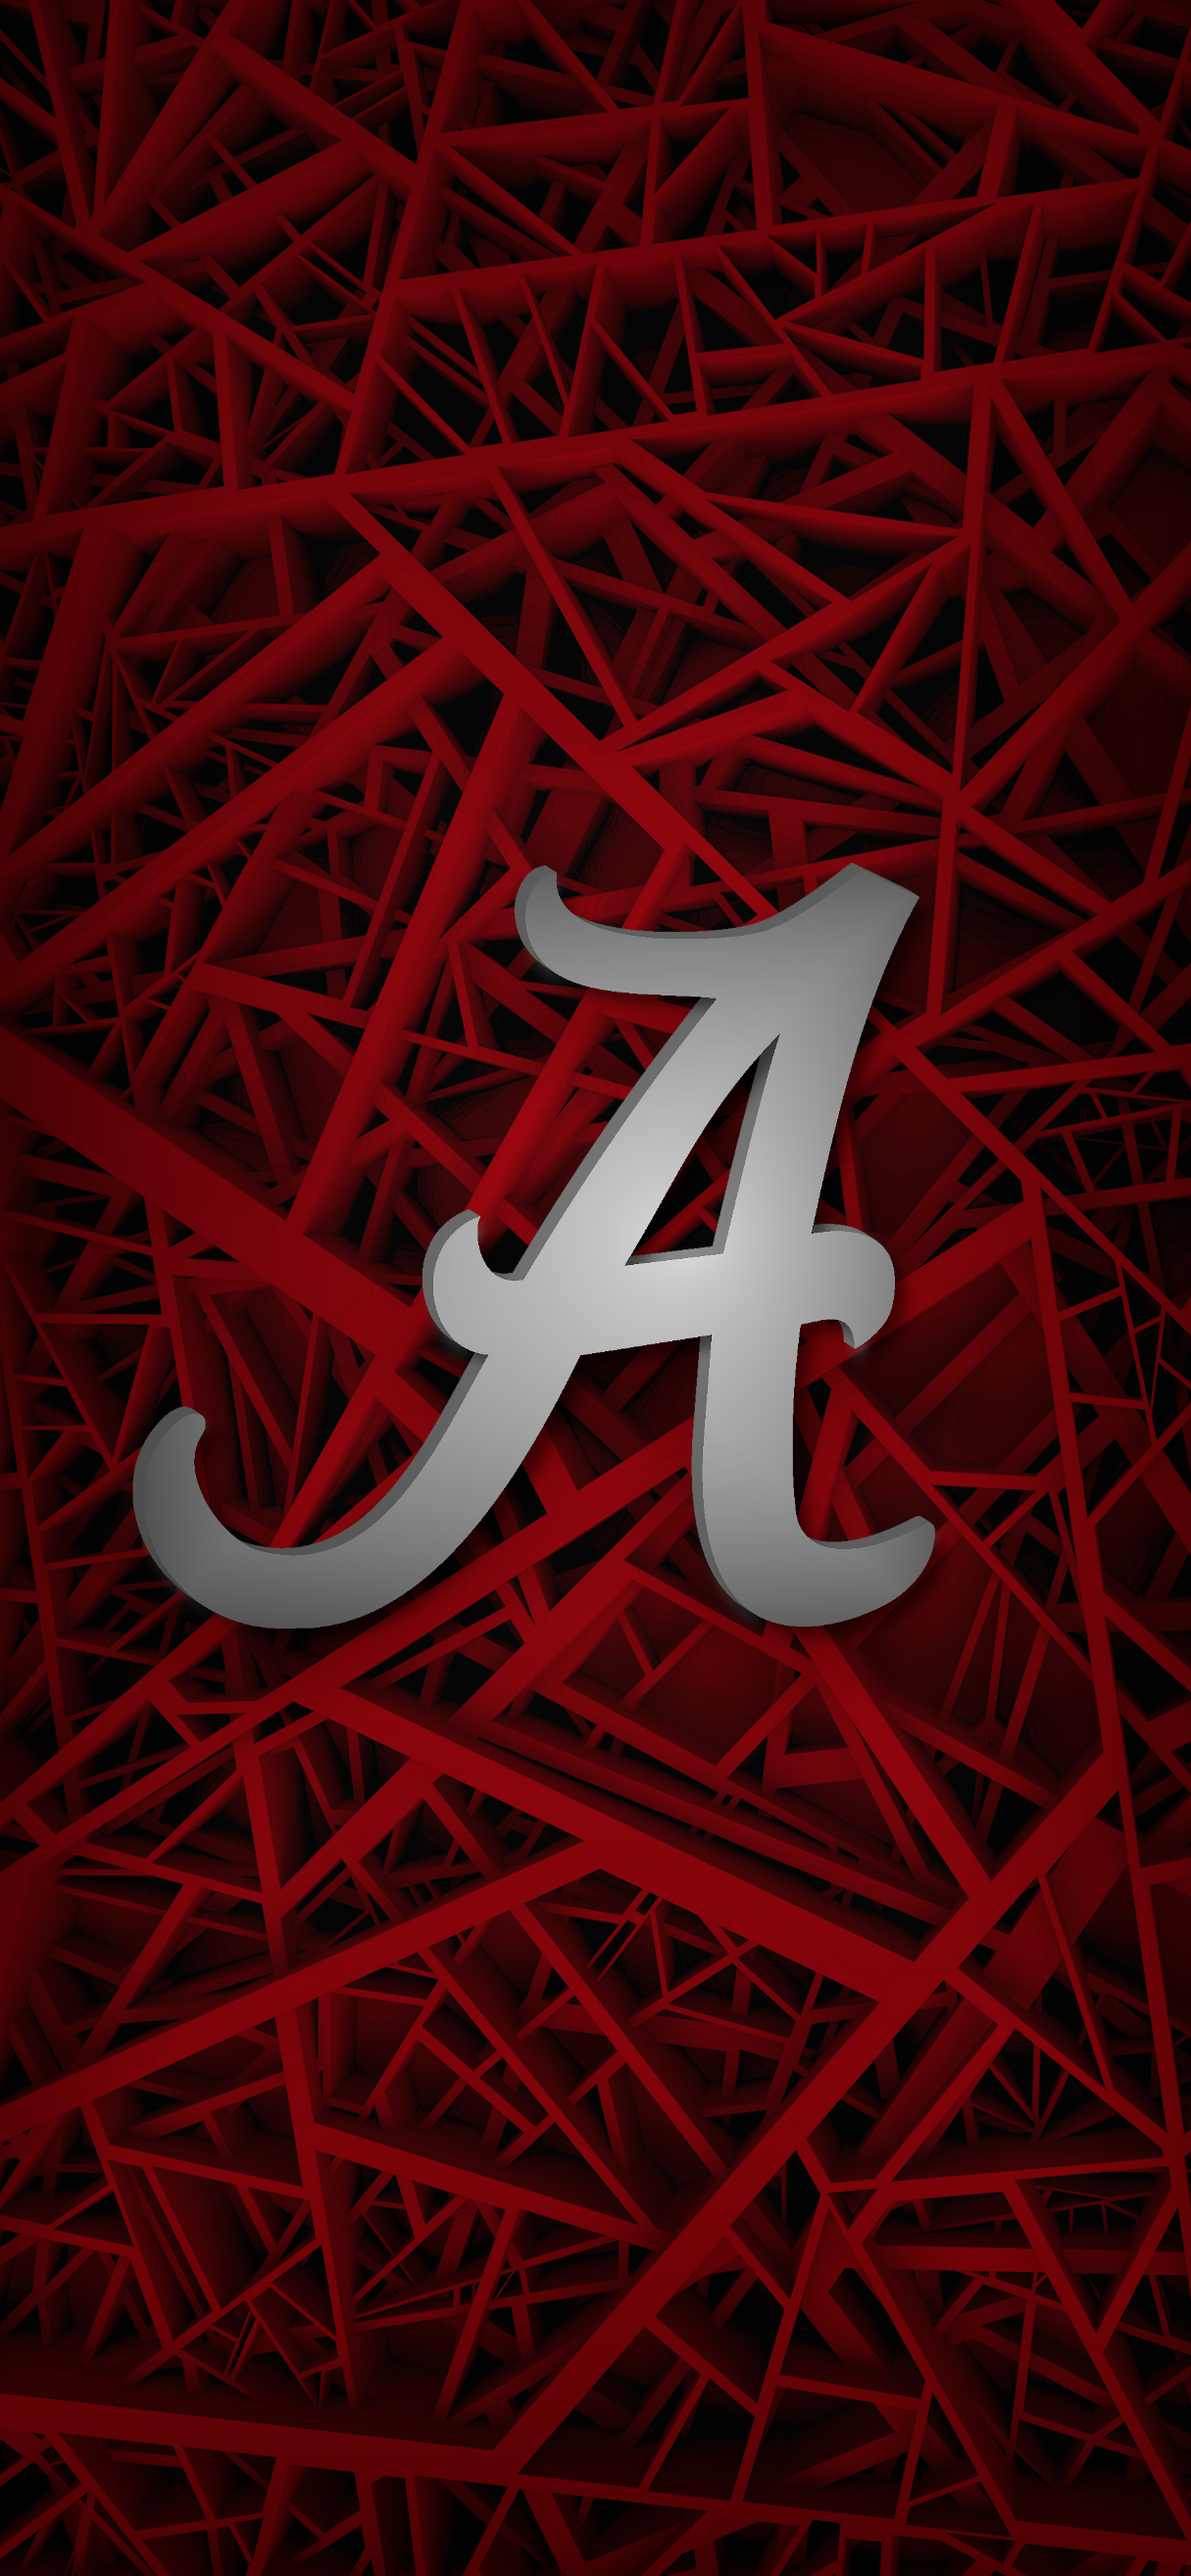 A Script 1 Alabama Crimson Tide Alabama Crimson Tide Logo Alabama Crimson Tide Football